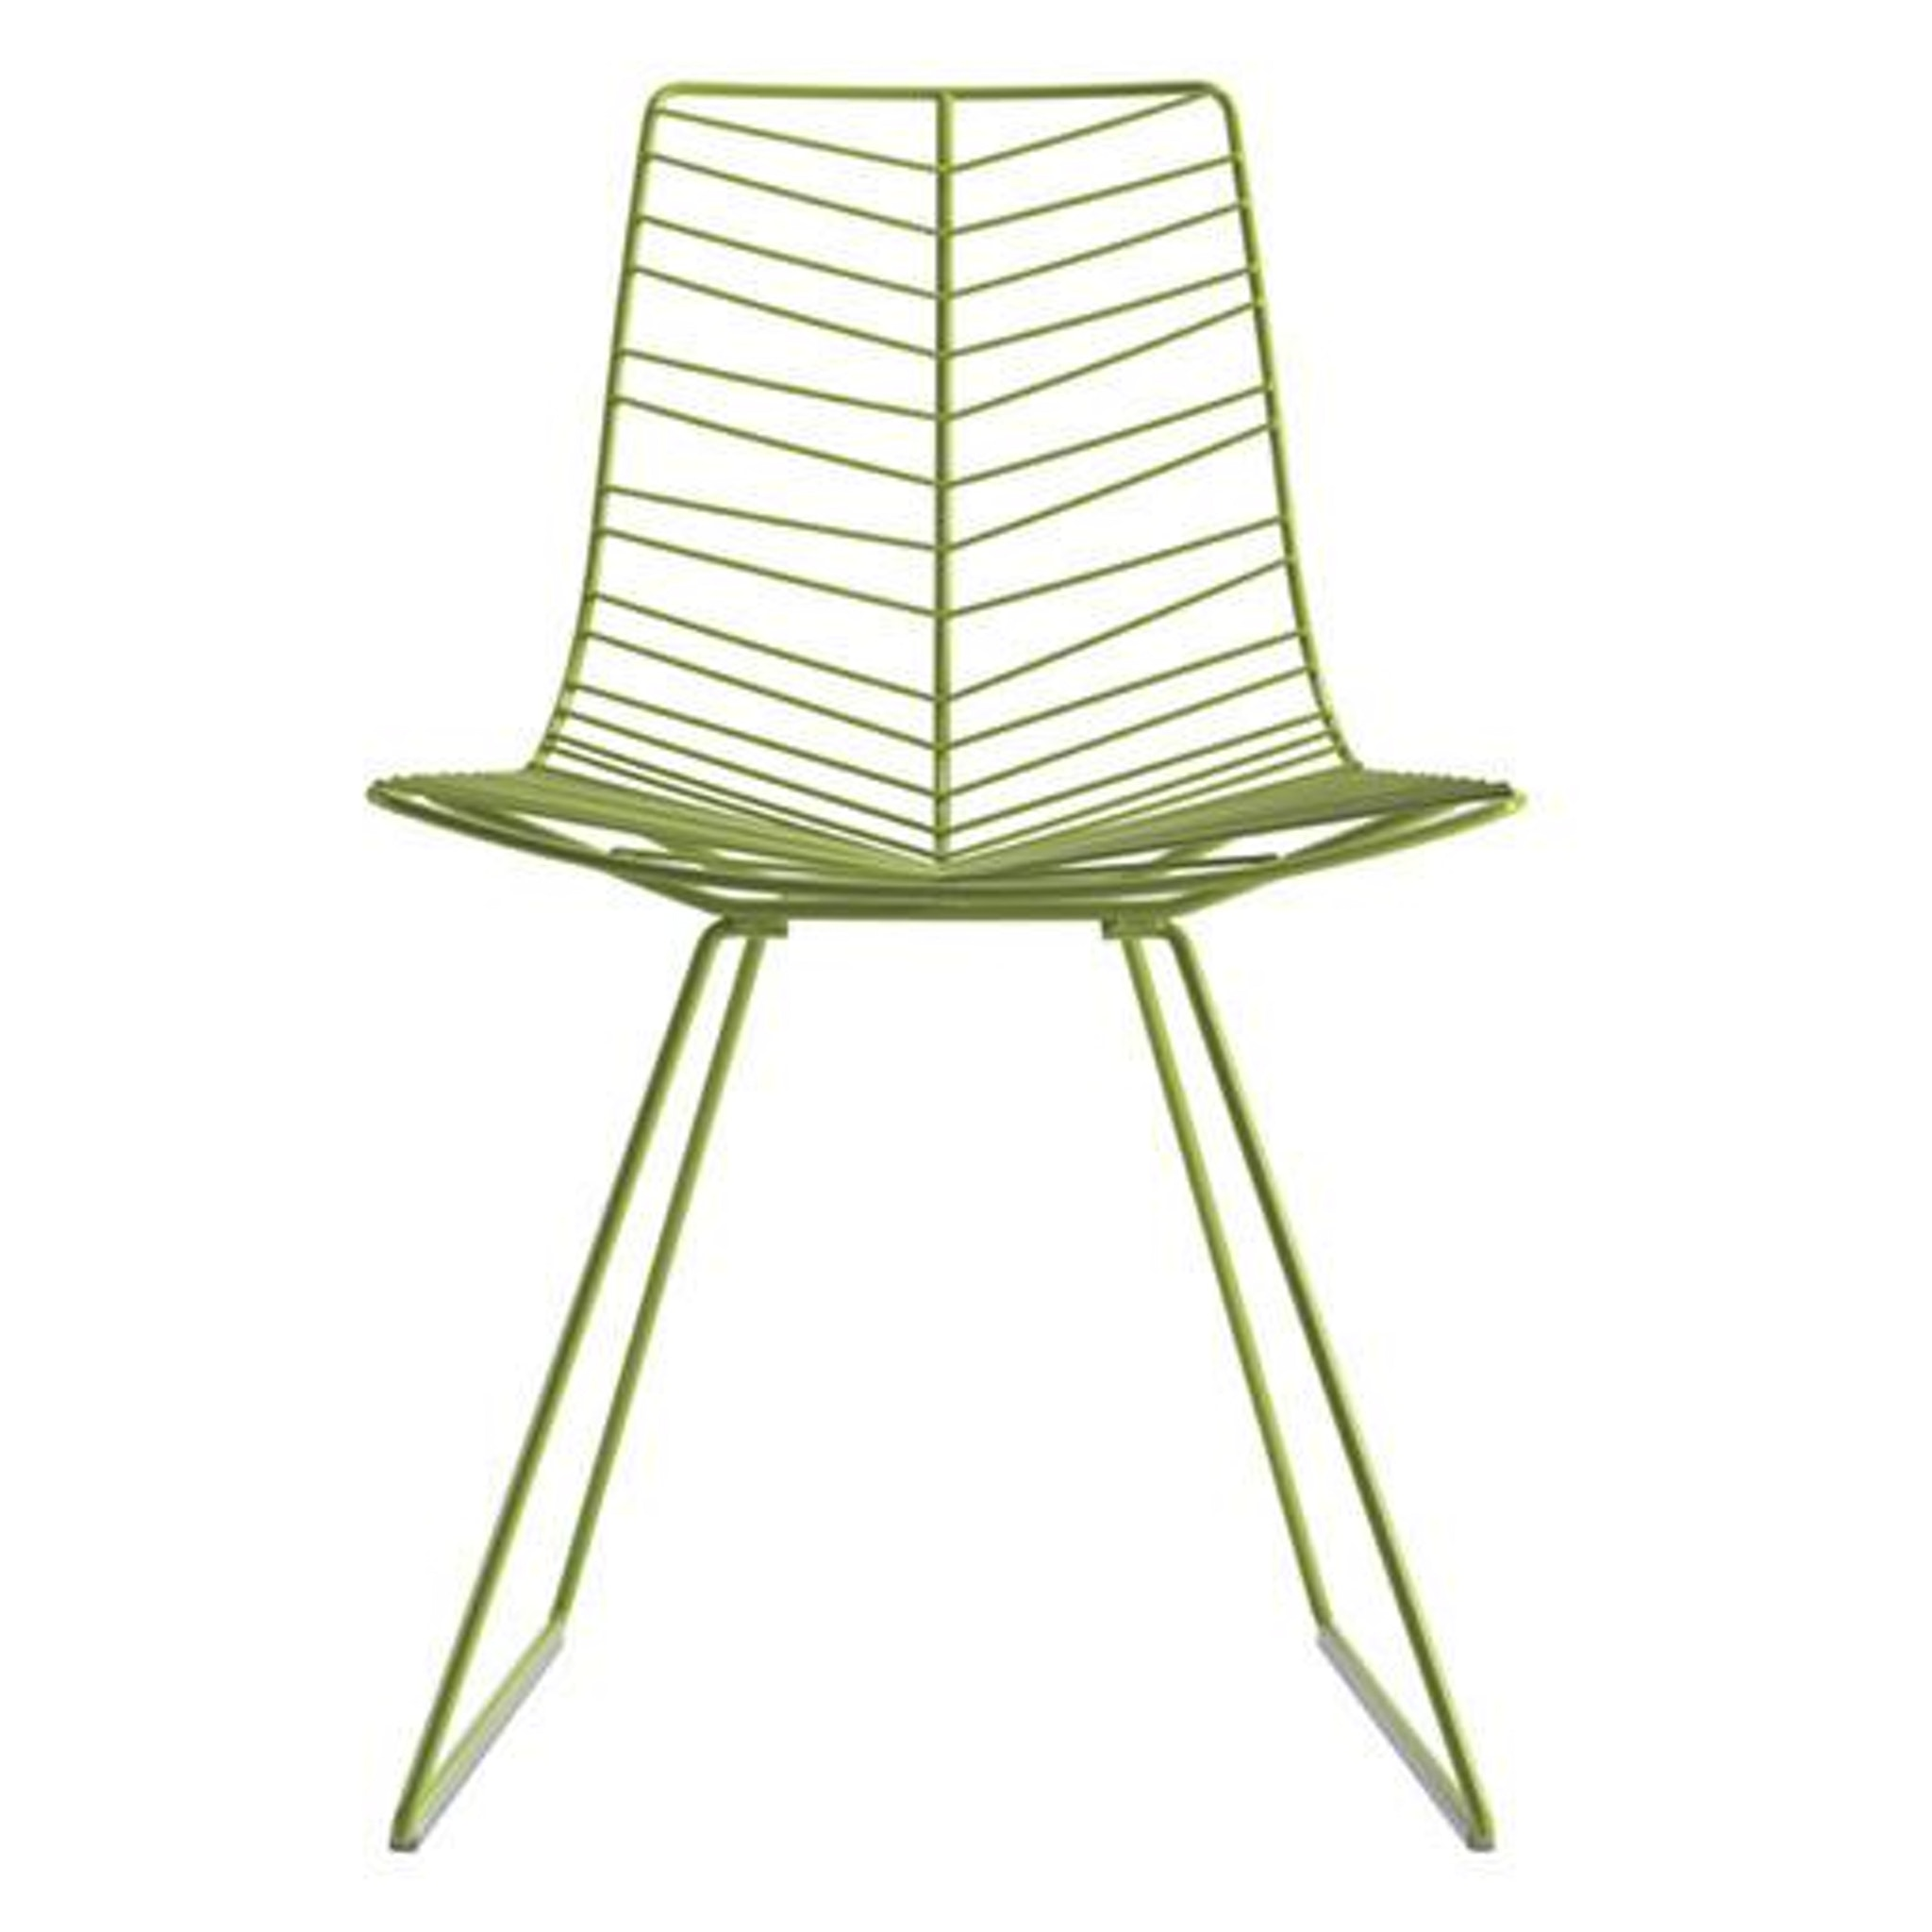 Leaf Chair by Arper